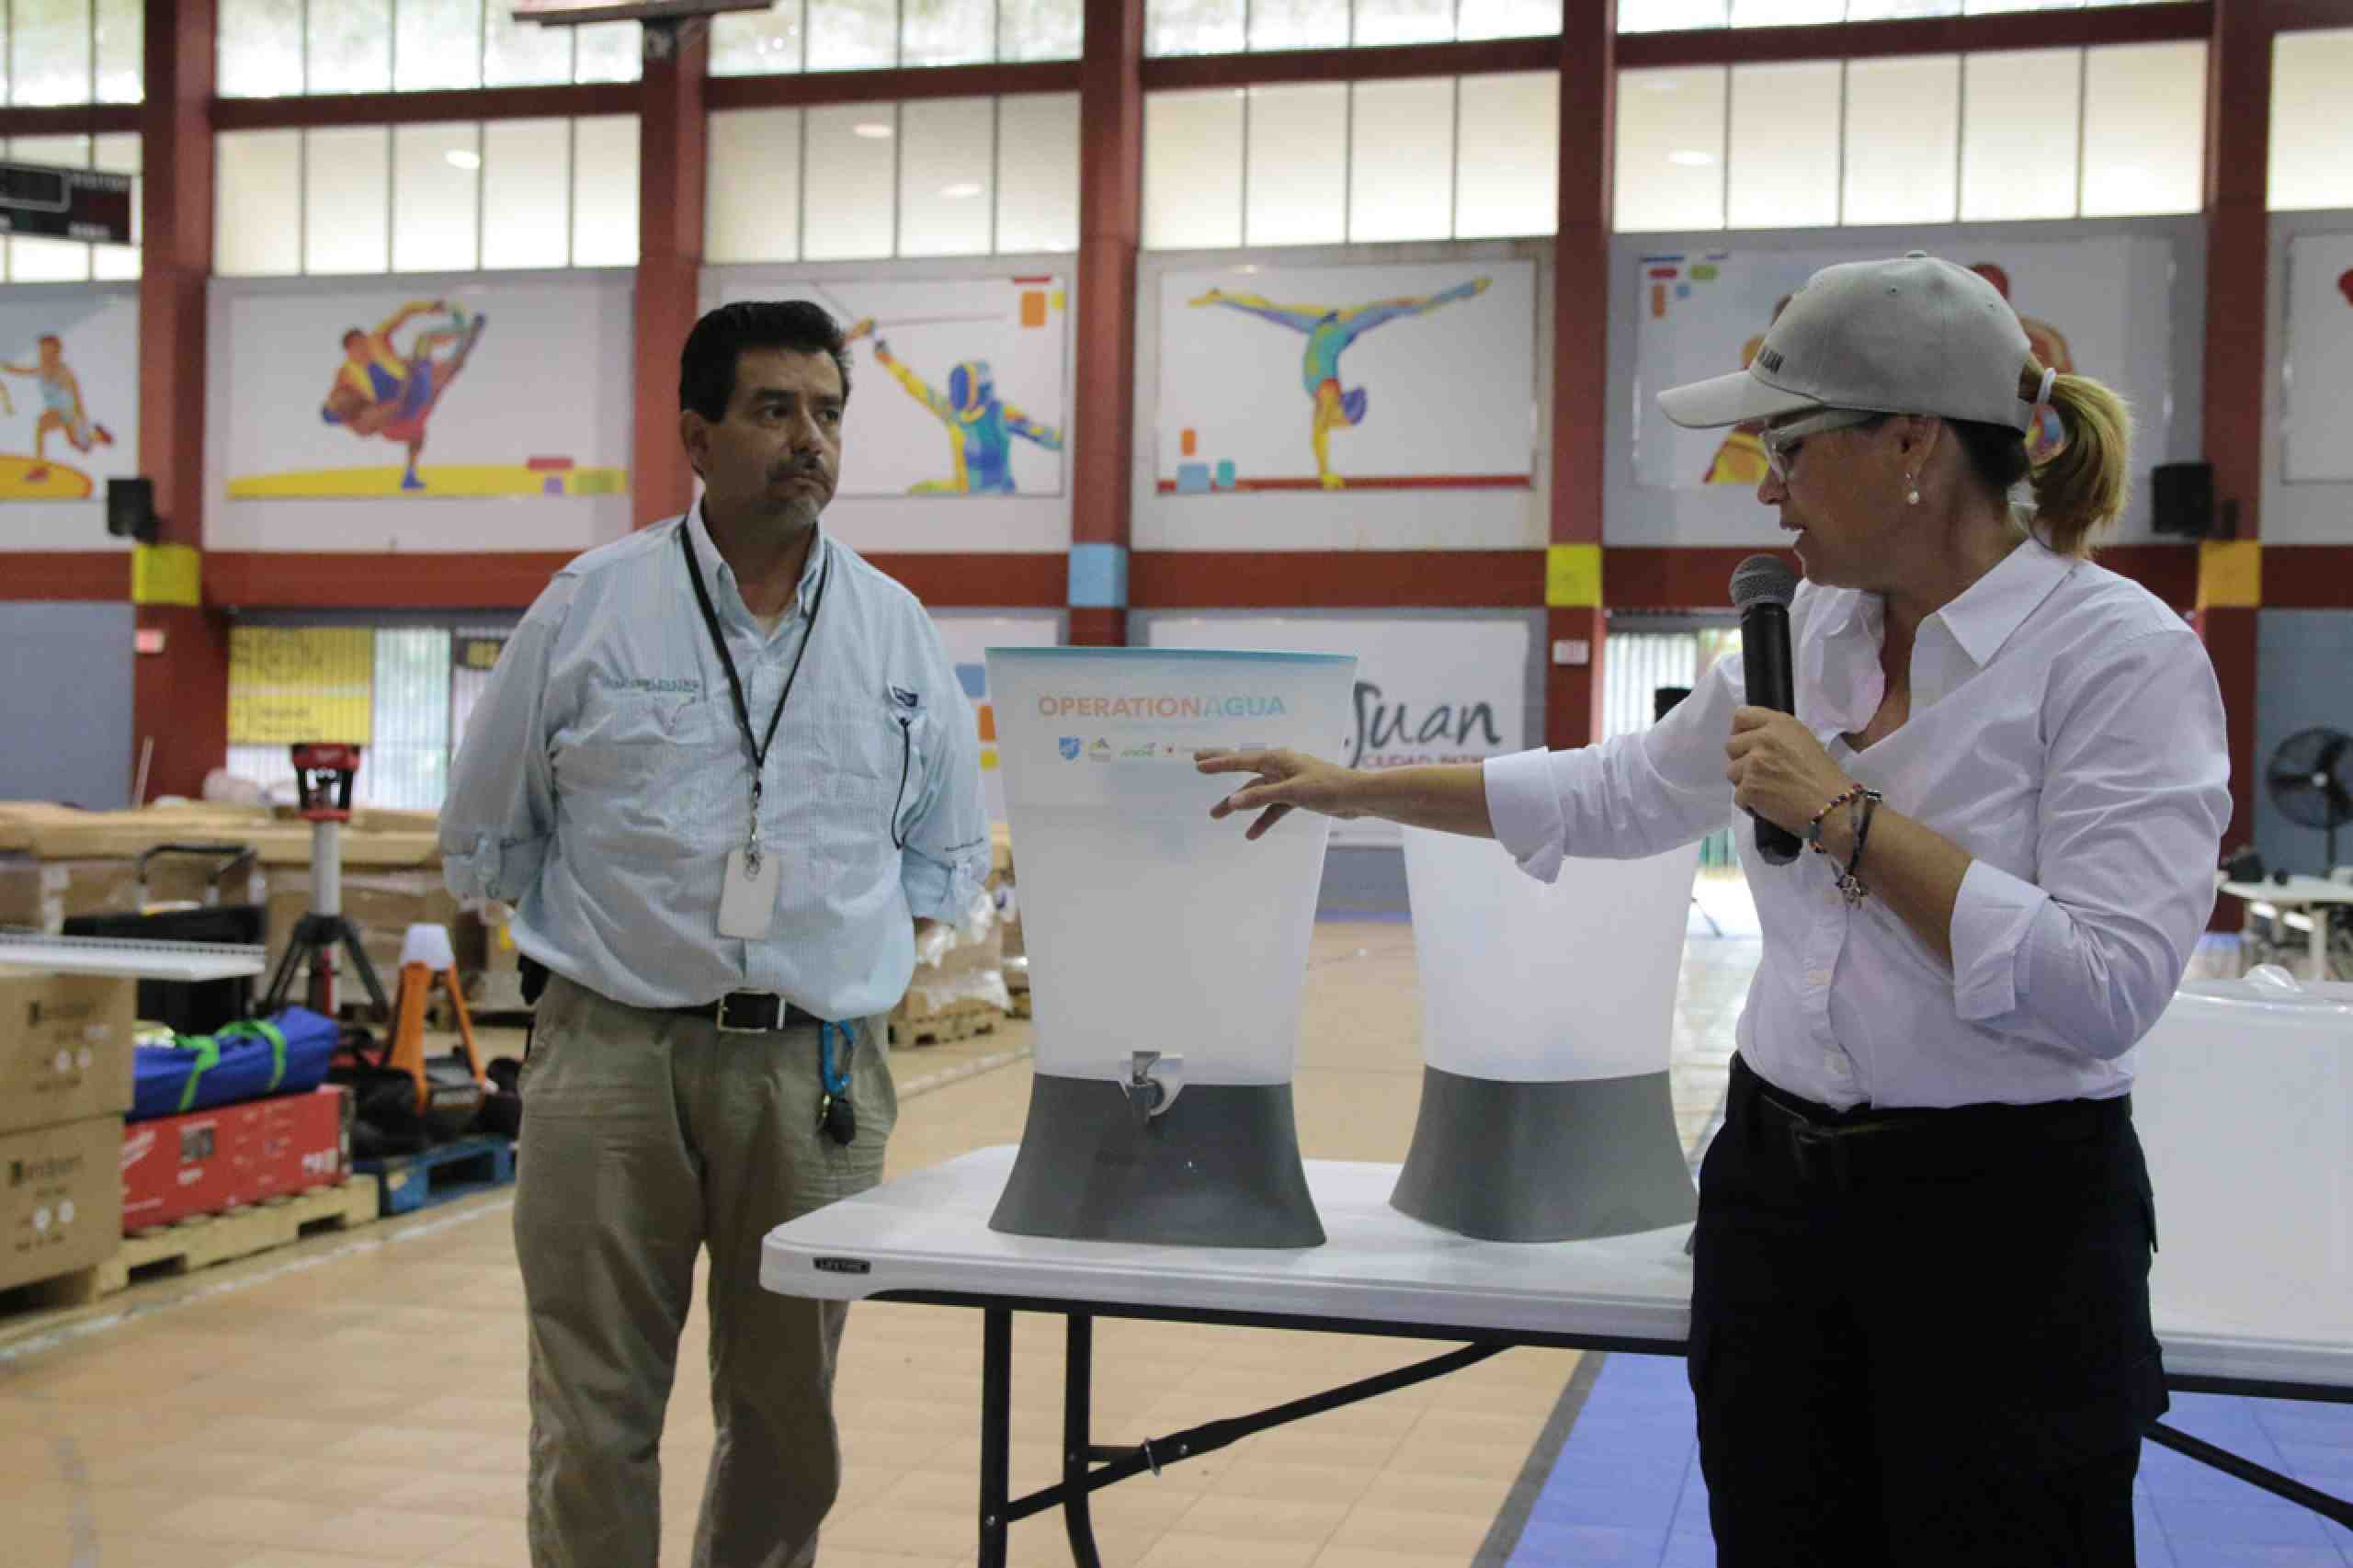 Mayor of San Juan, Carmen Yulín Cruz, with water filters